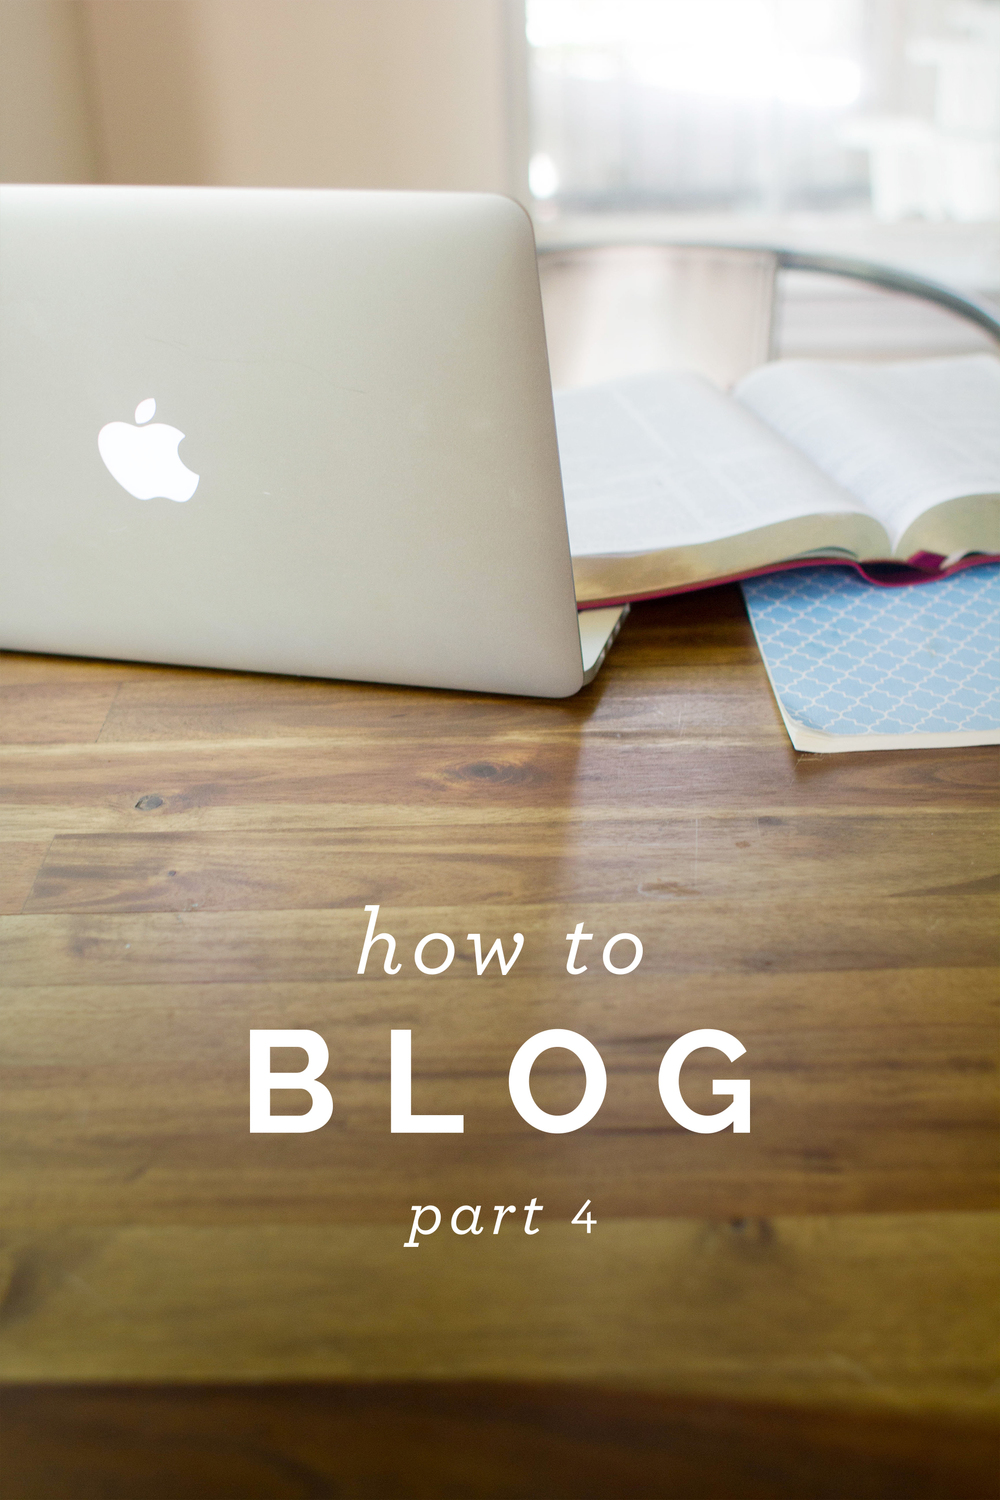 How to Blog, Part 4 - that's pretty ace